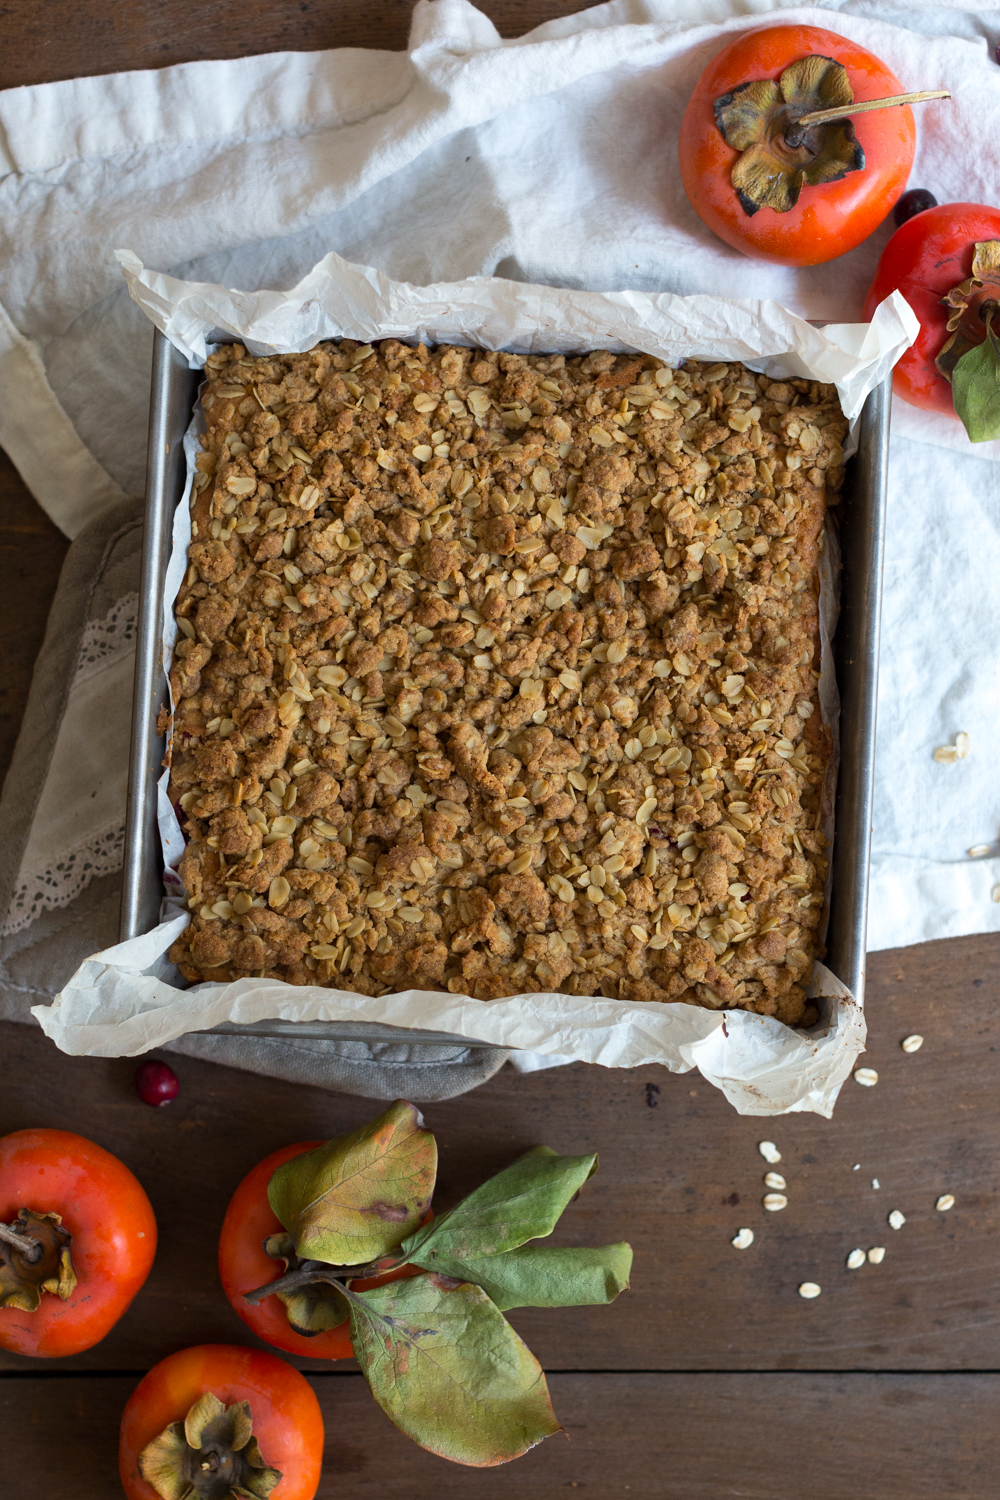 Persimmon Cranberry Crumb Cake baked